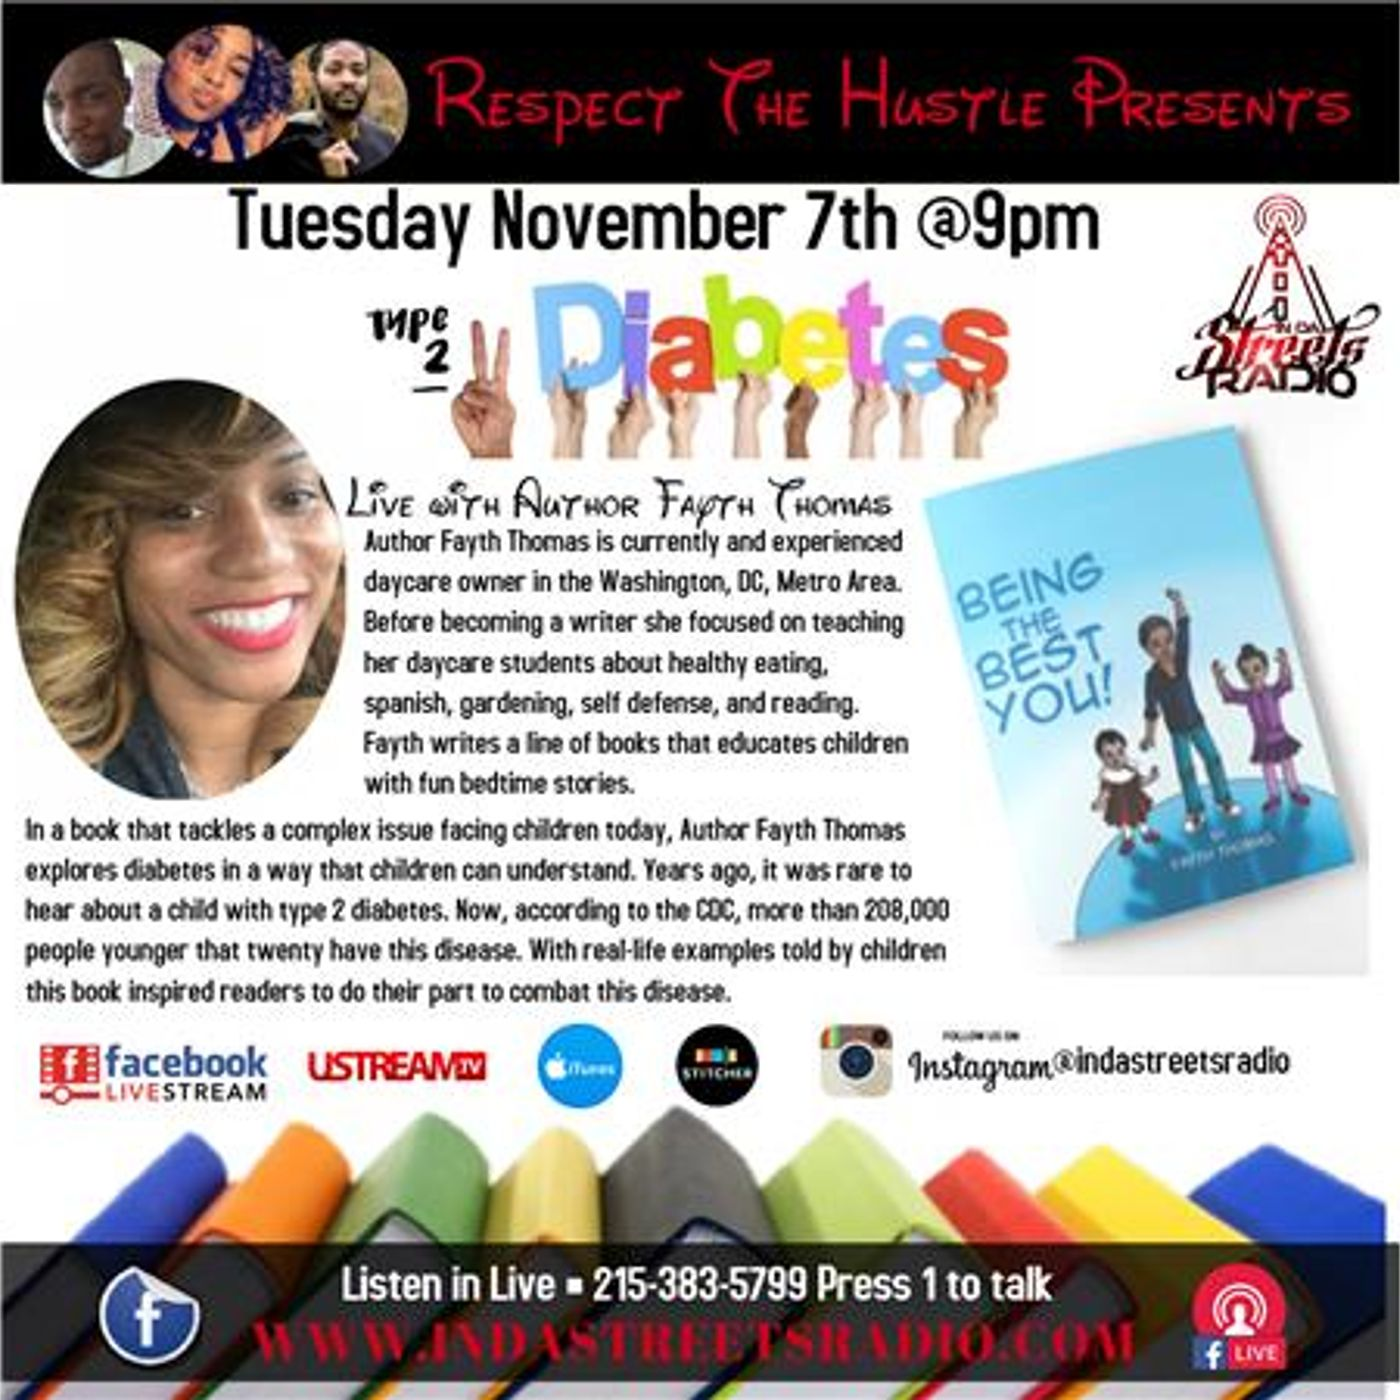 Childrens Author Fayth Thomas Live on Respect The Hustle 215-383-5799